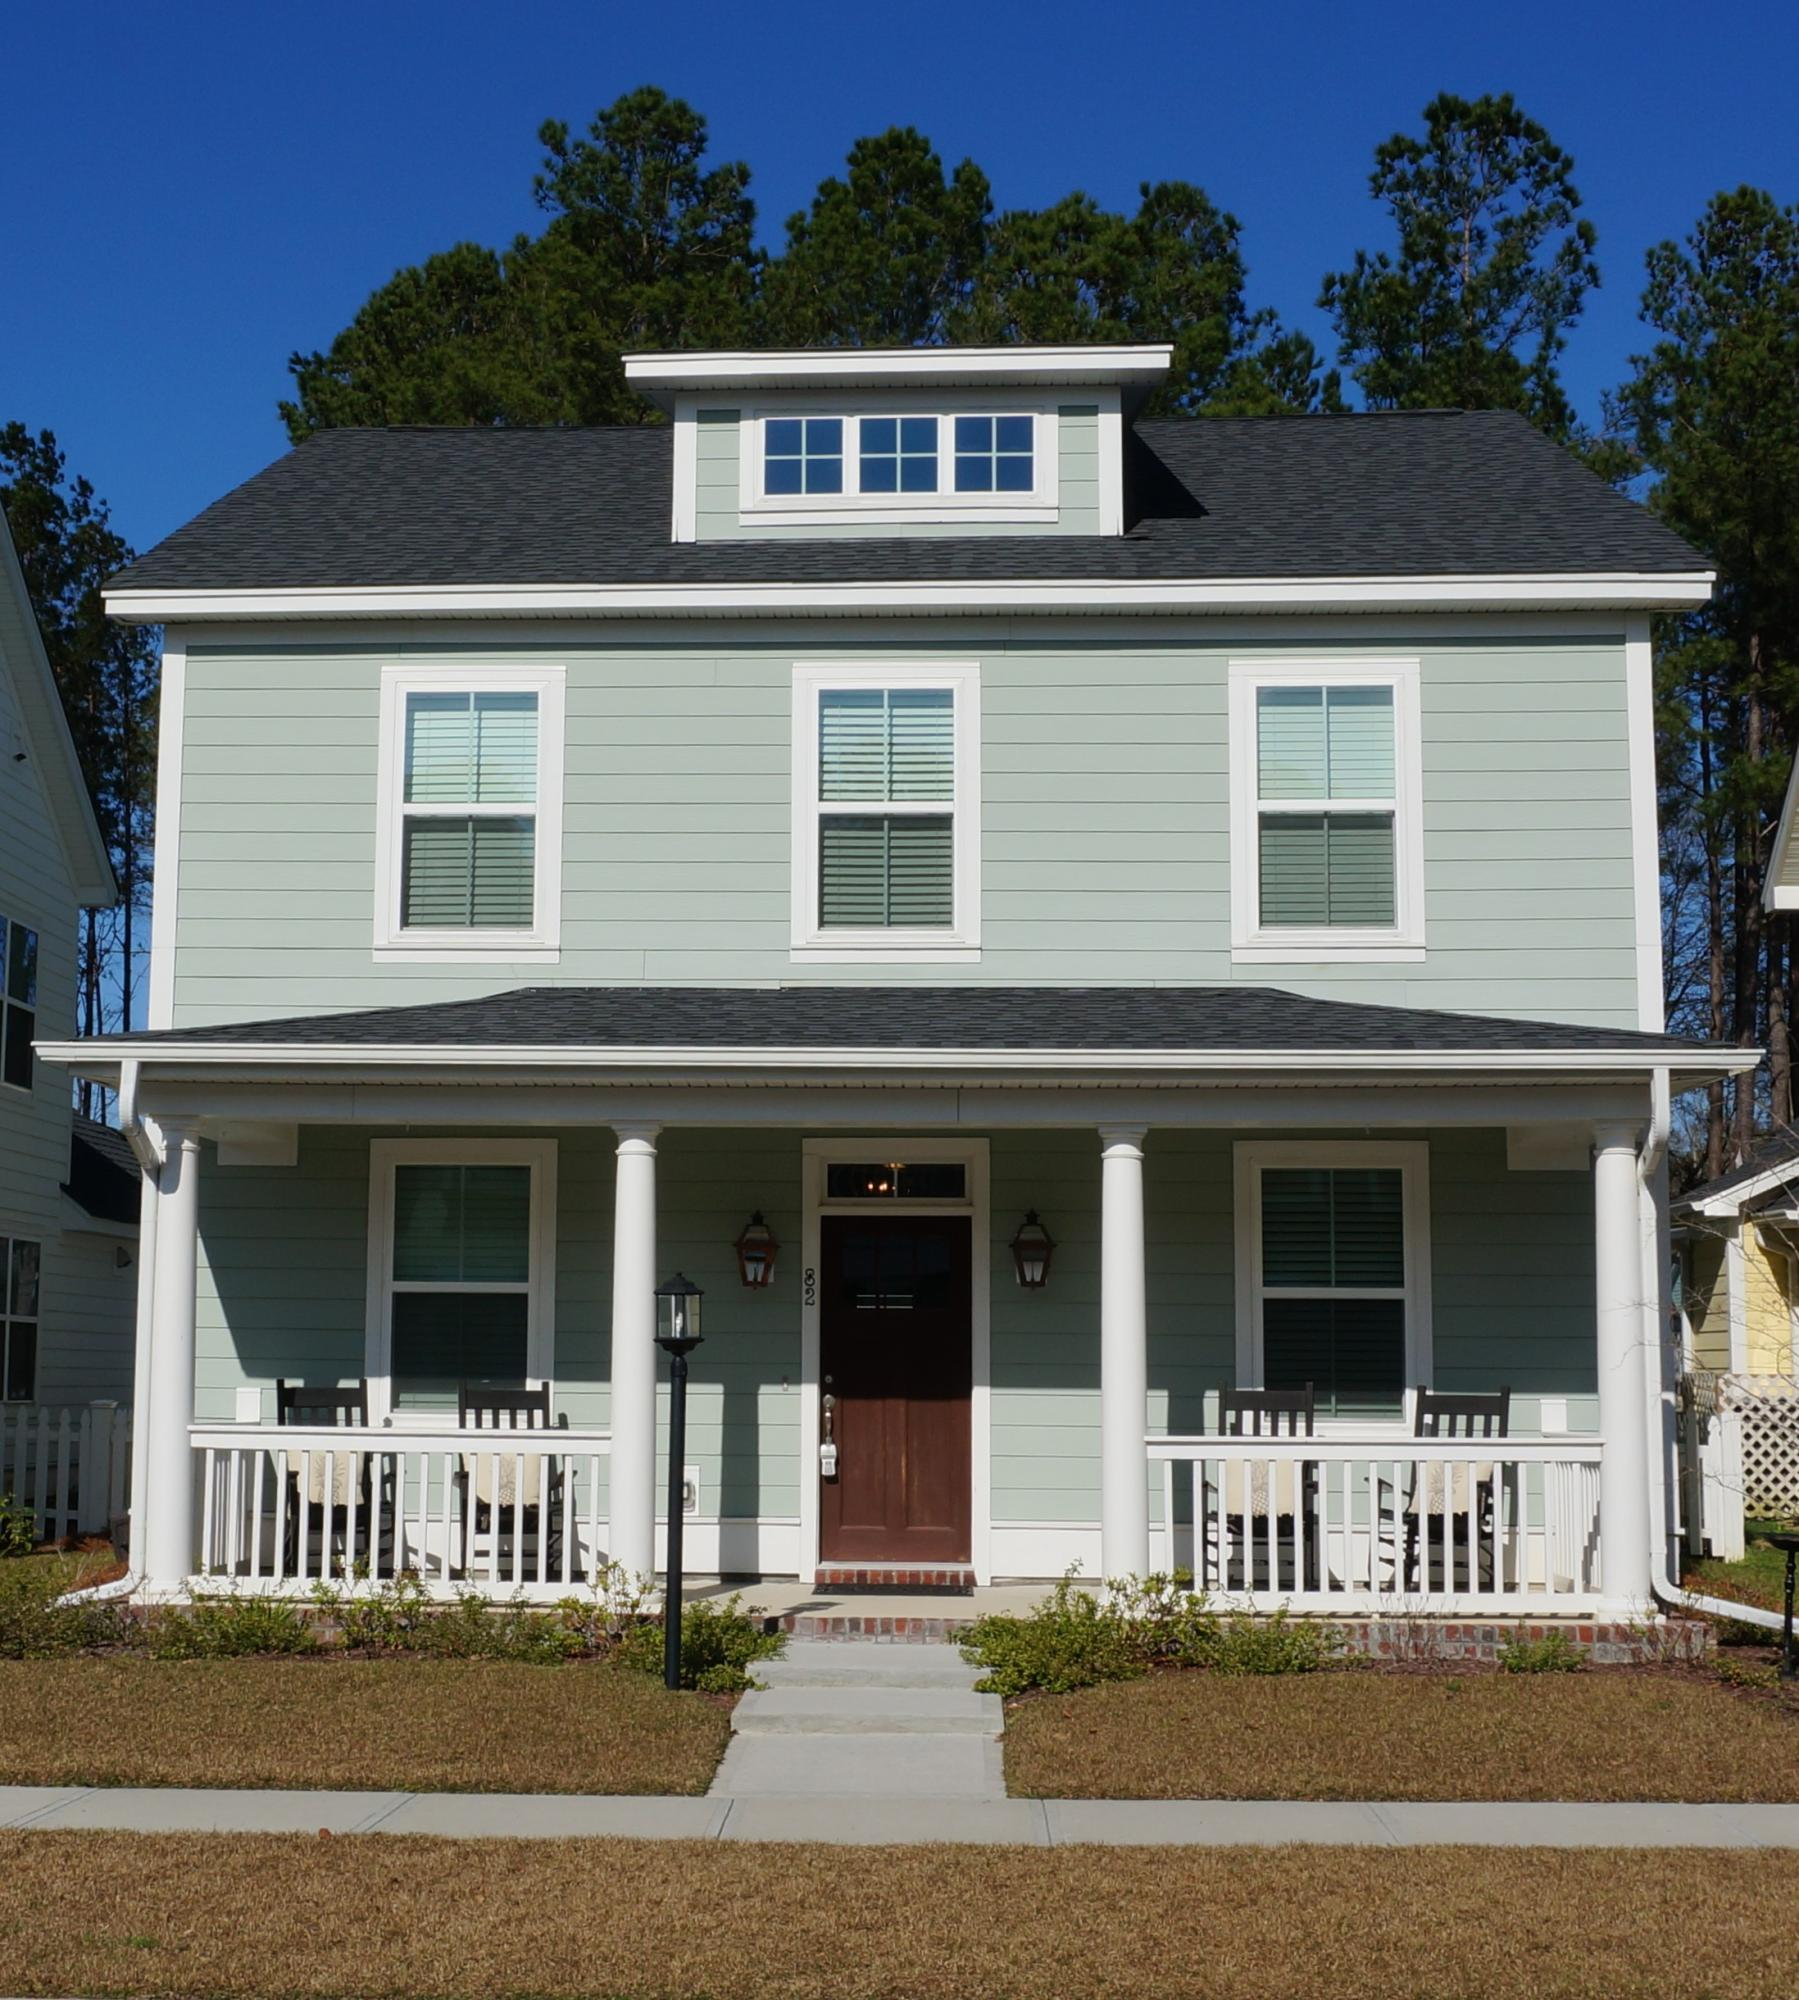 82 Crossandra Avenue Summerville, SC 29483